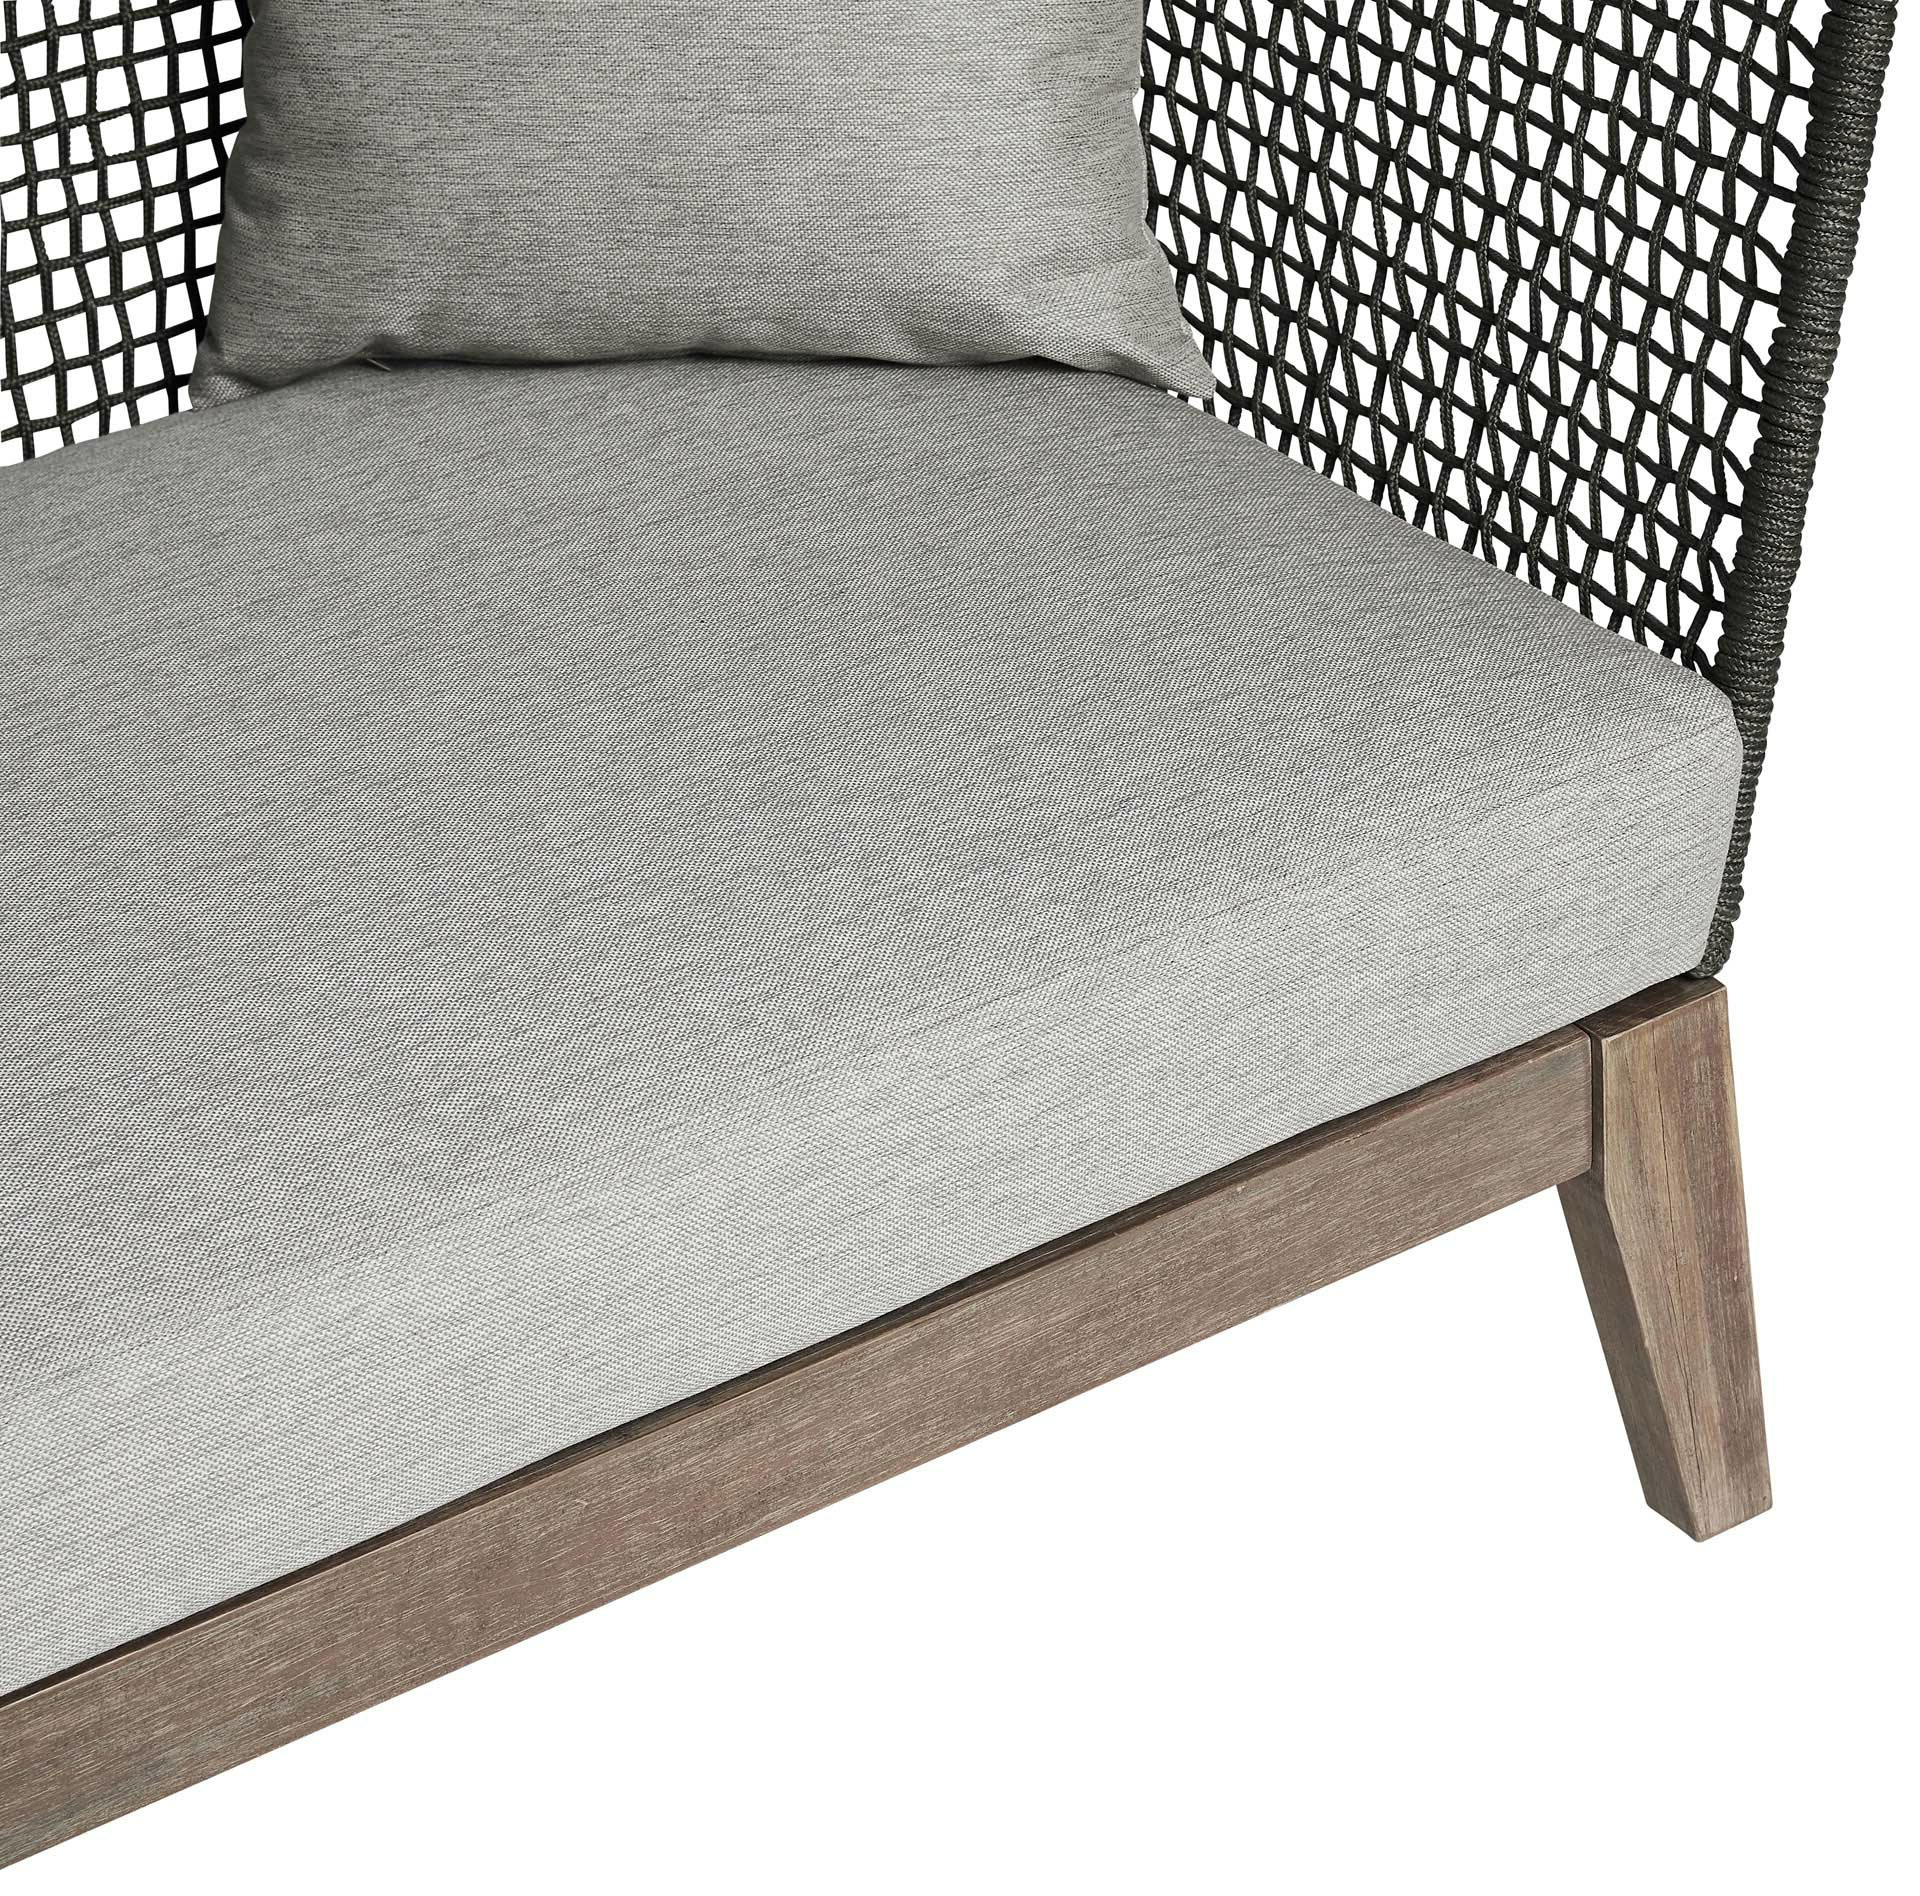 Netta Patio Sofa With Cushion Intended For Famous Jamilla Teak Patio Sofas With Cushion (Gallery 10 of 25)